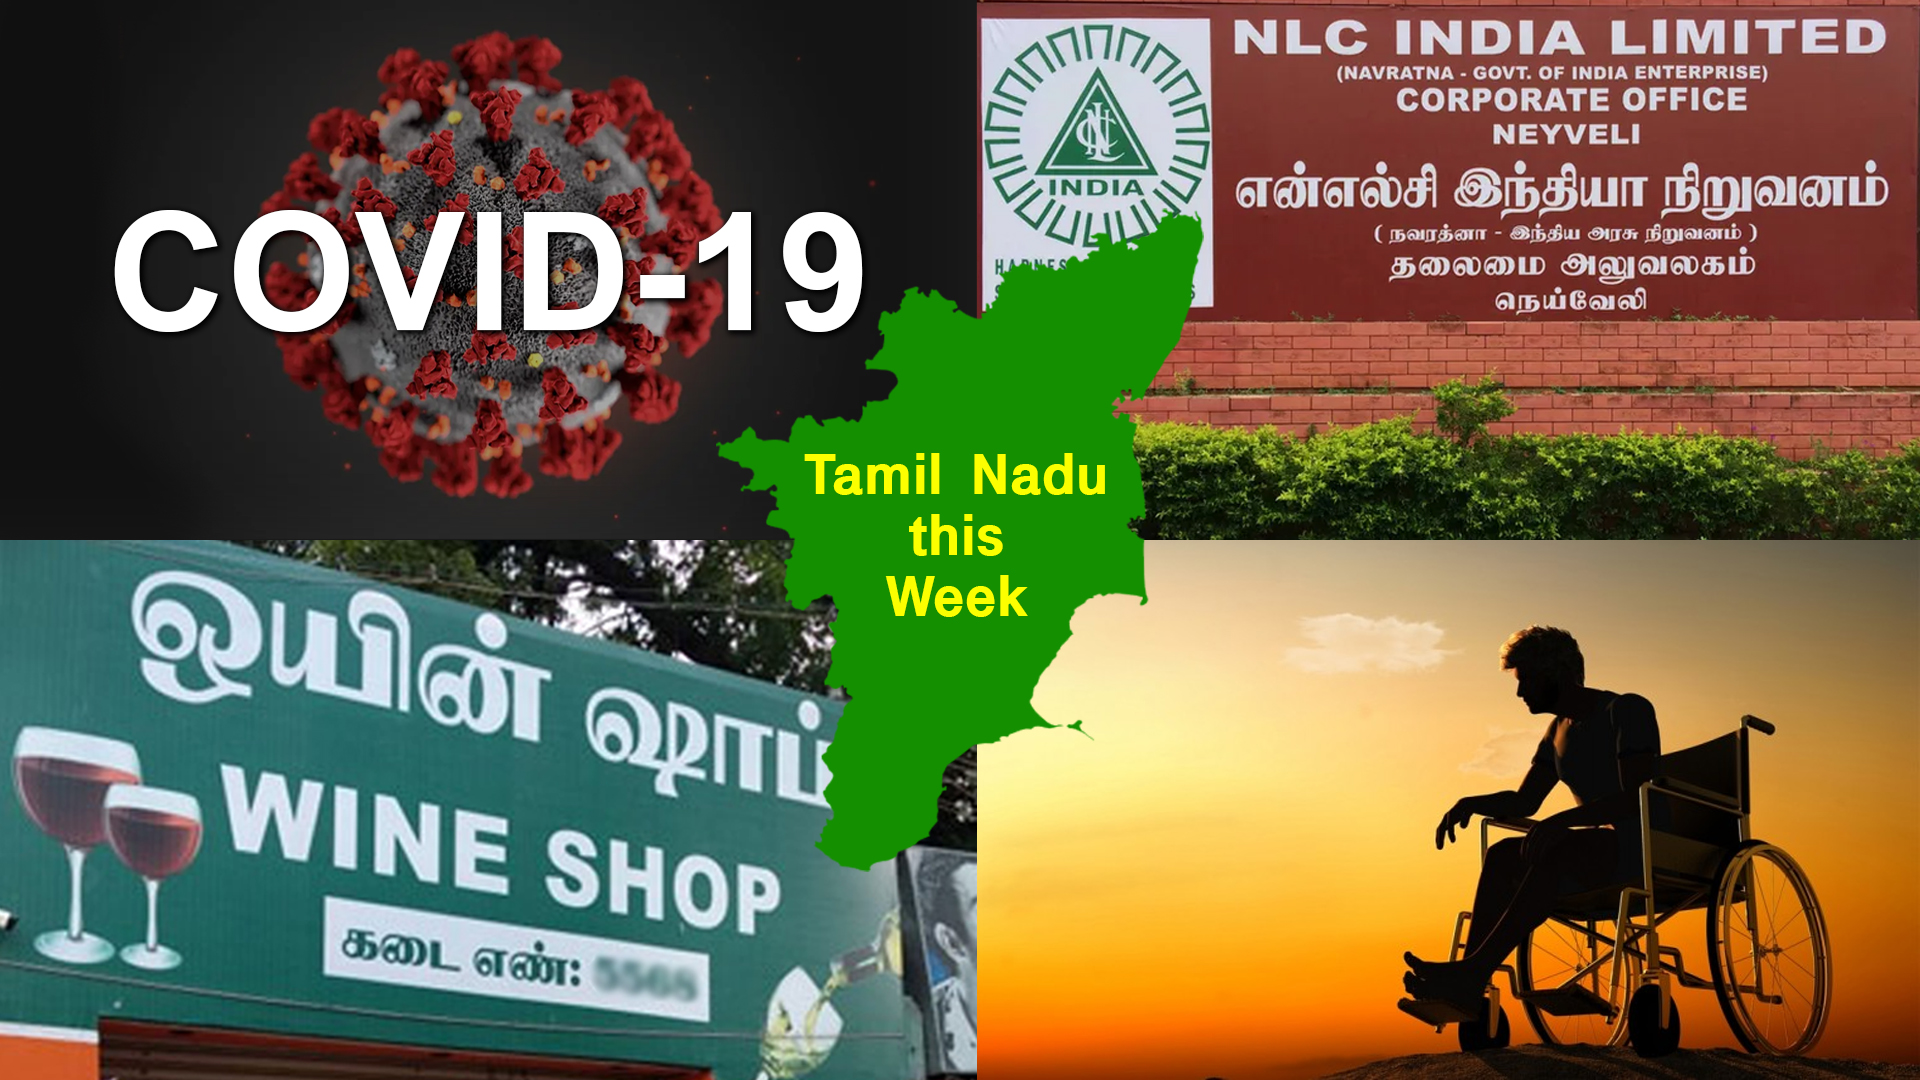 TN This Week: 6,000 COVID-19 Cases, NLC Explosion Injures 8 Workers, Protests Across State Demanding Lockdown Relief